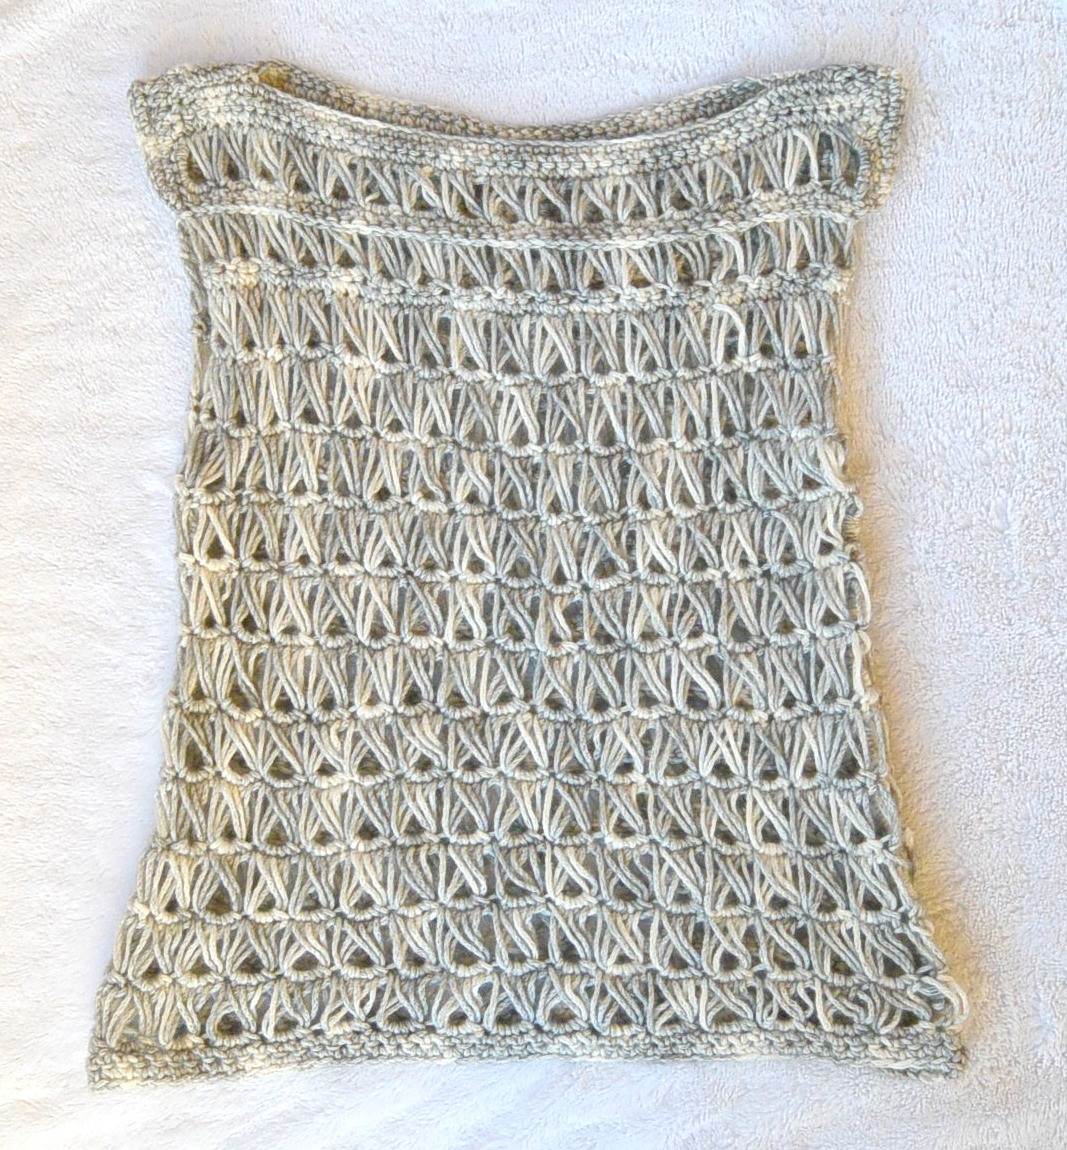 Elegant Broomstick Lace Crochet top – Mama In A Stitch Broomstick Crochet Of Amazing 44 Pics Broomstick Crochet